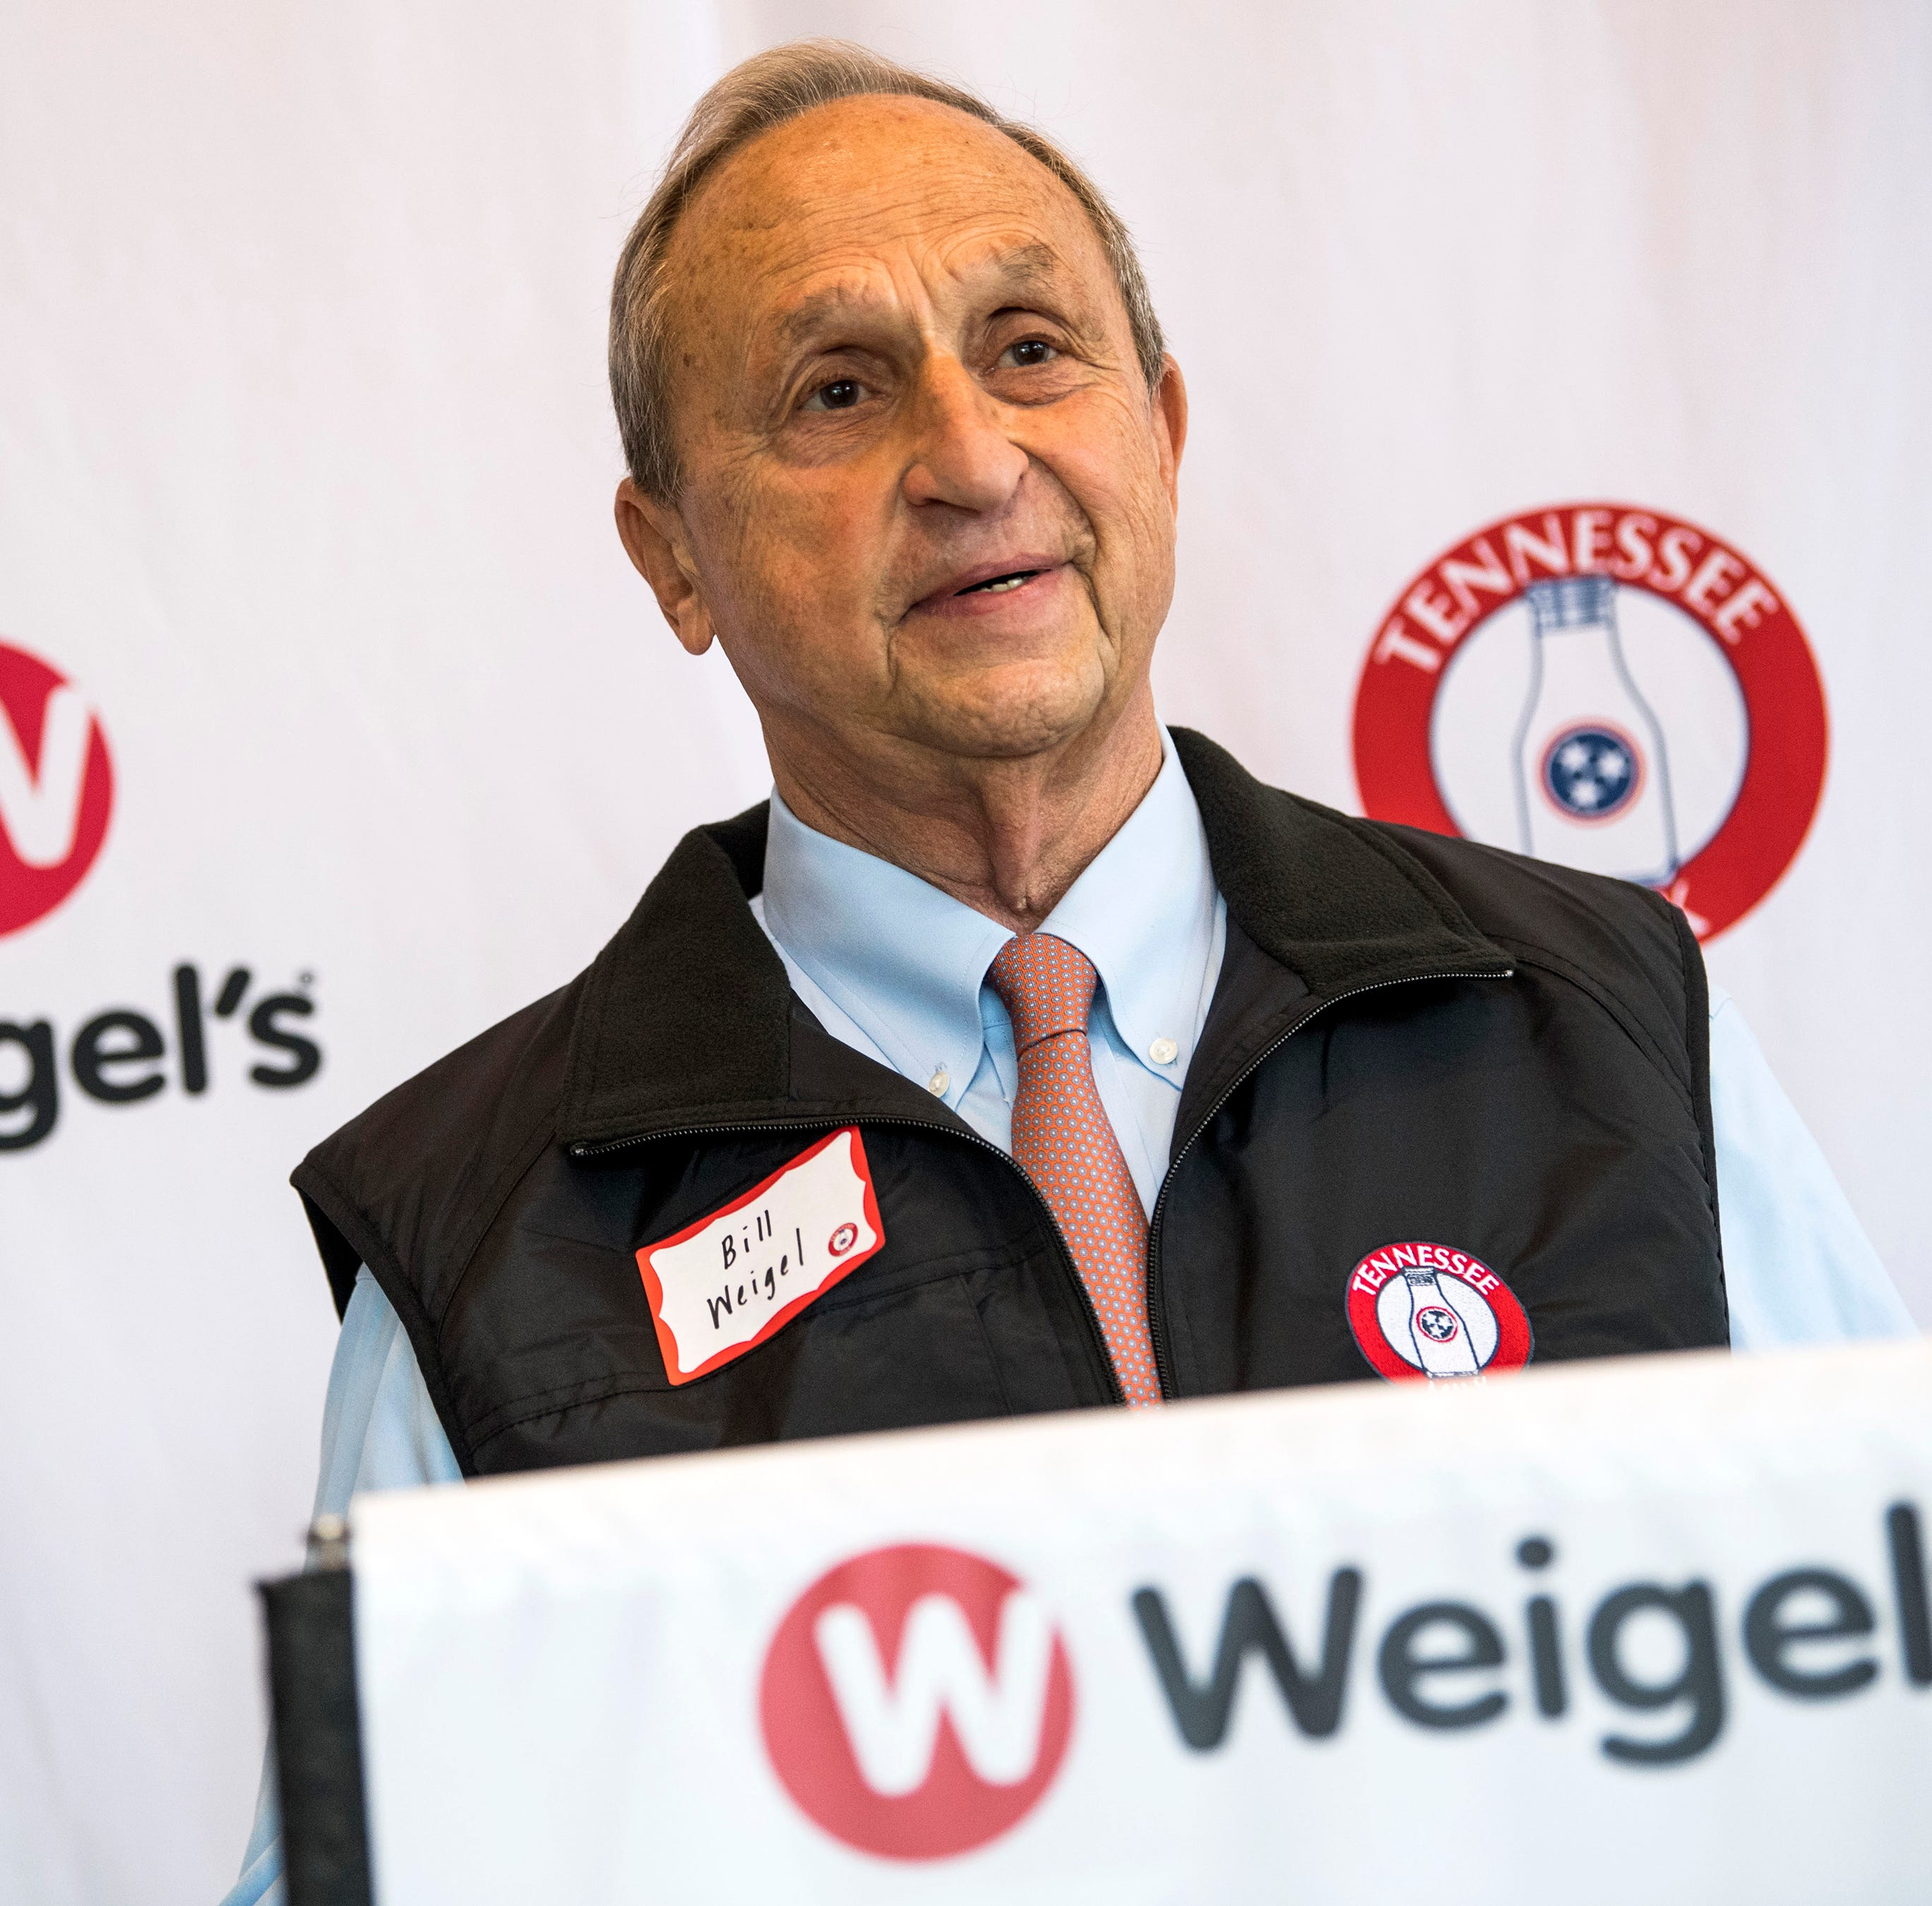 Weigel's milk now only from Tennessee dairies